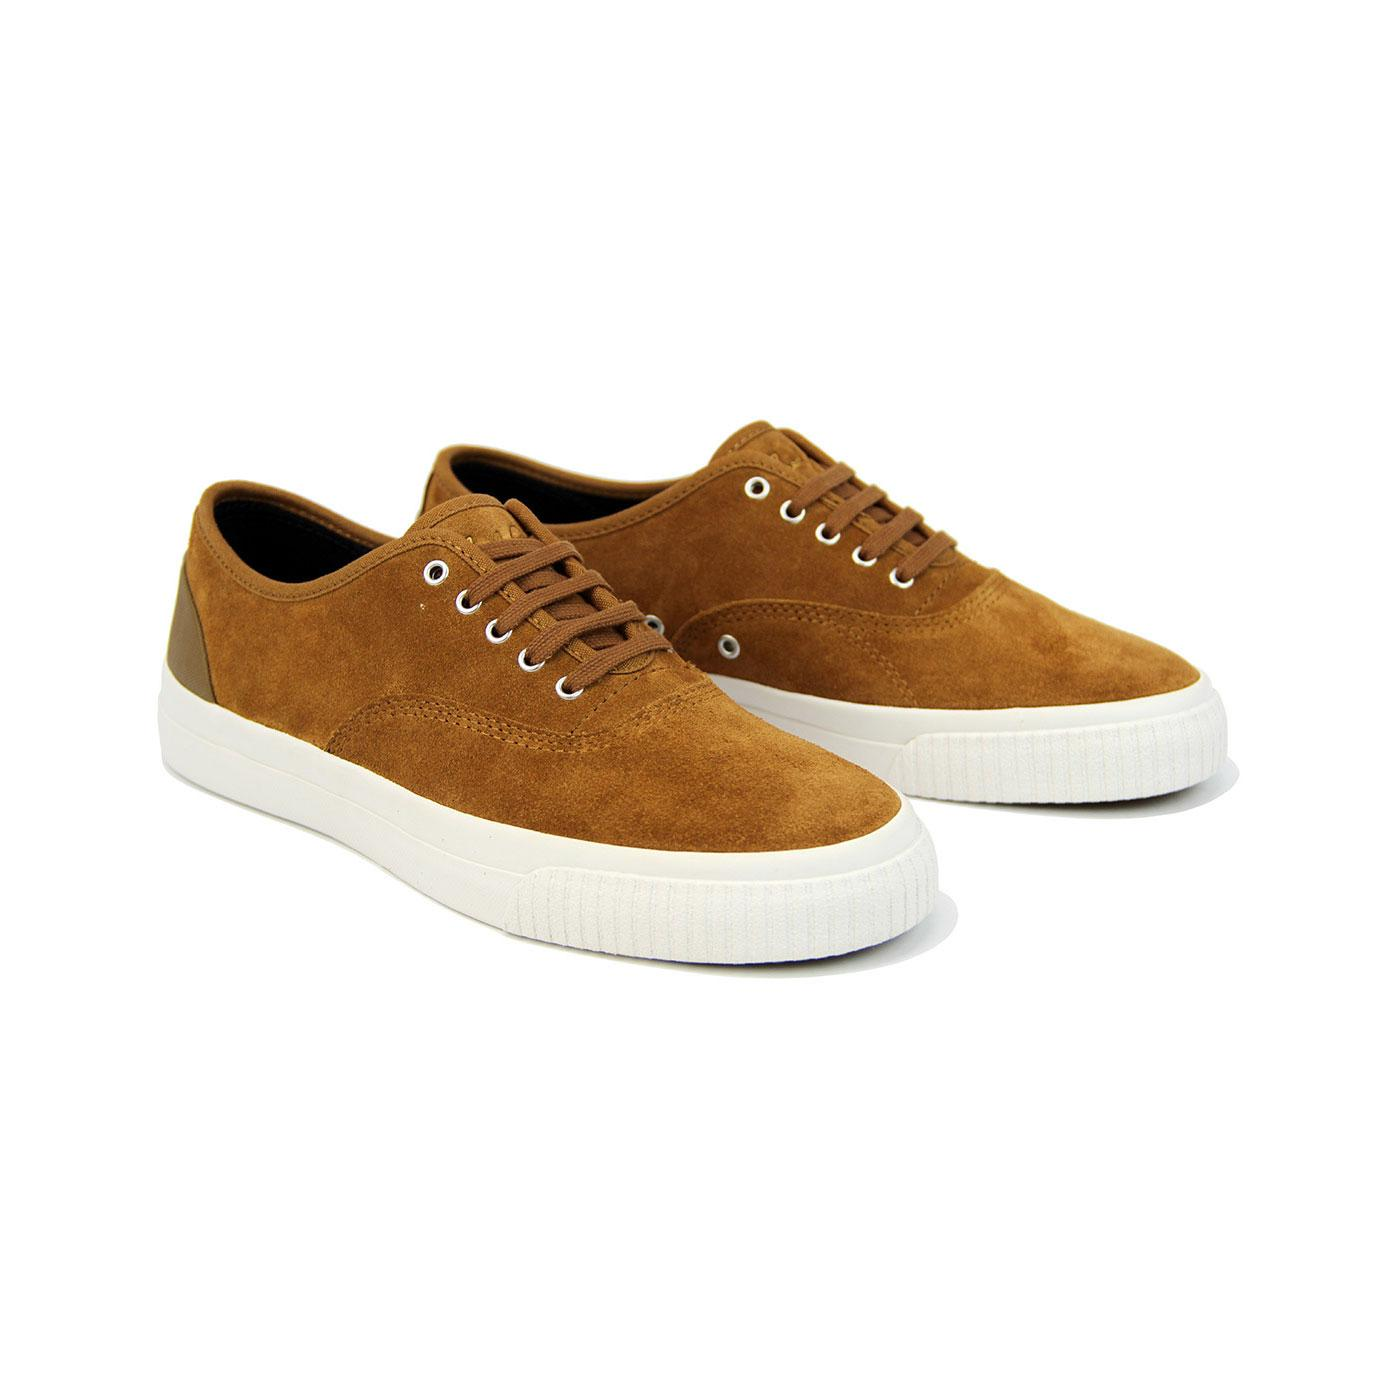 Brason FRED PERRY Men's Retro Suede Trainers